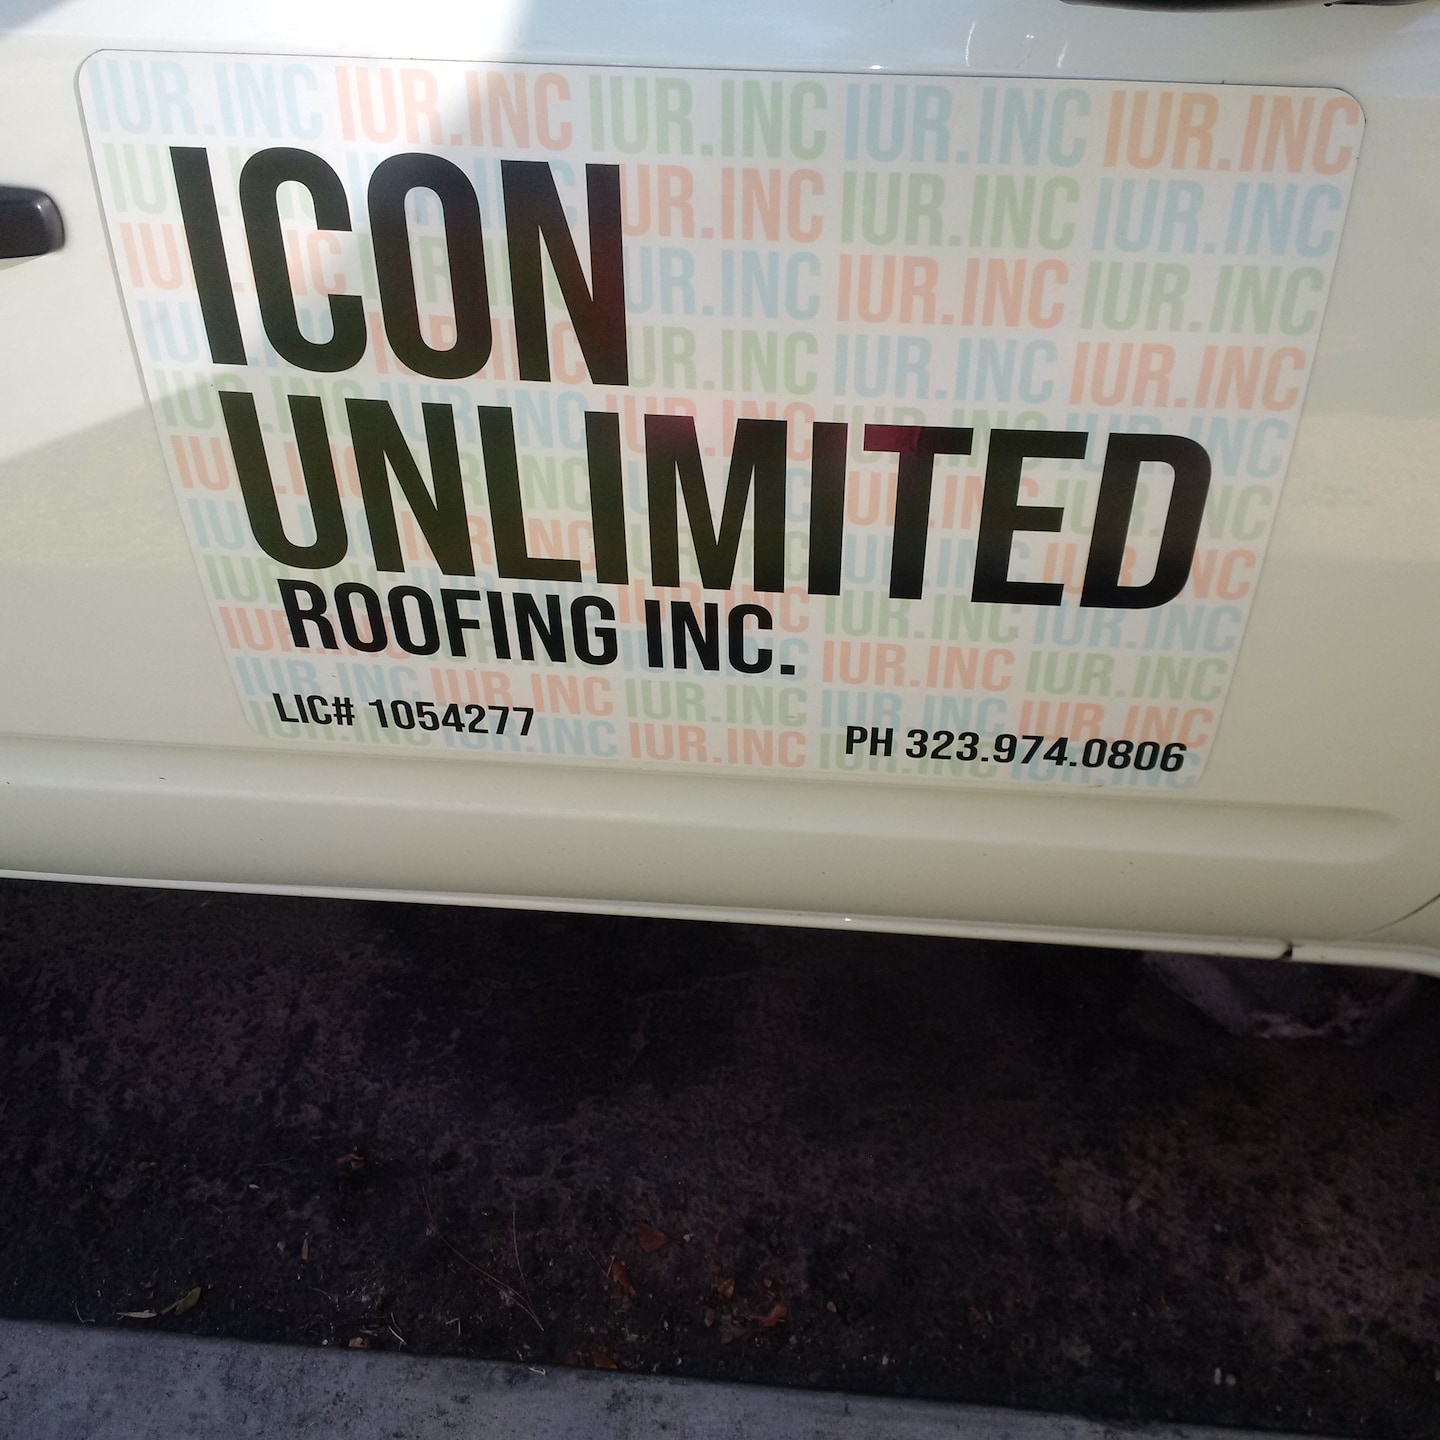 ICON UNLIMITED ROOFING INC